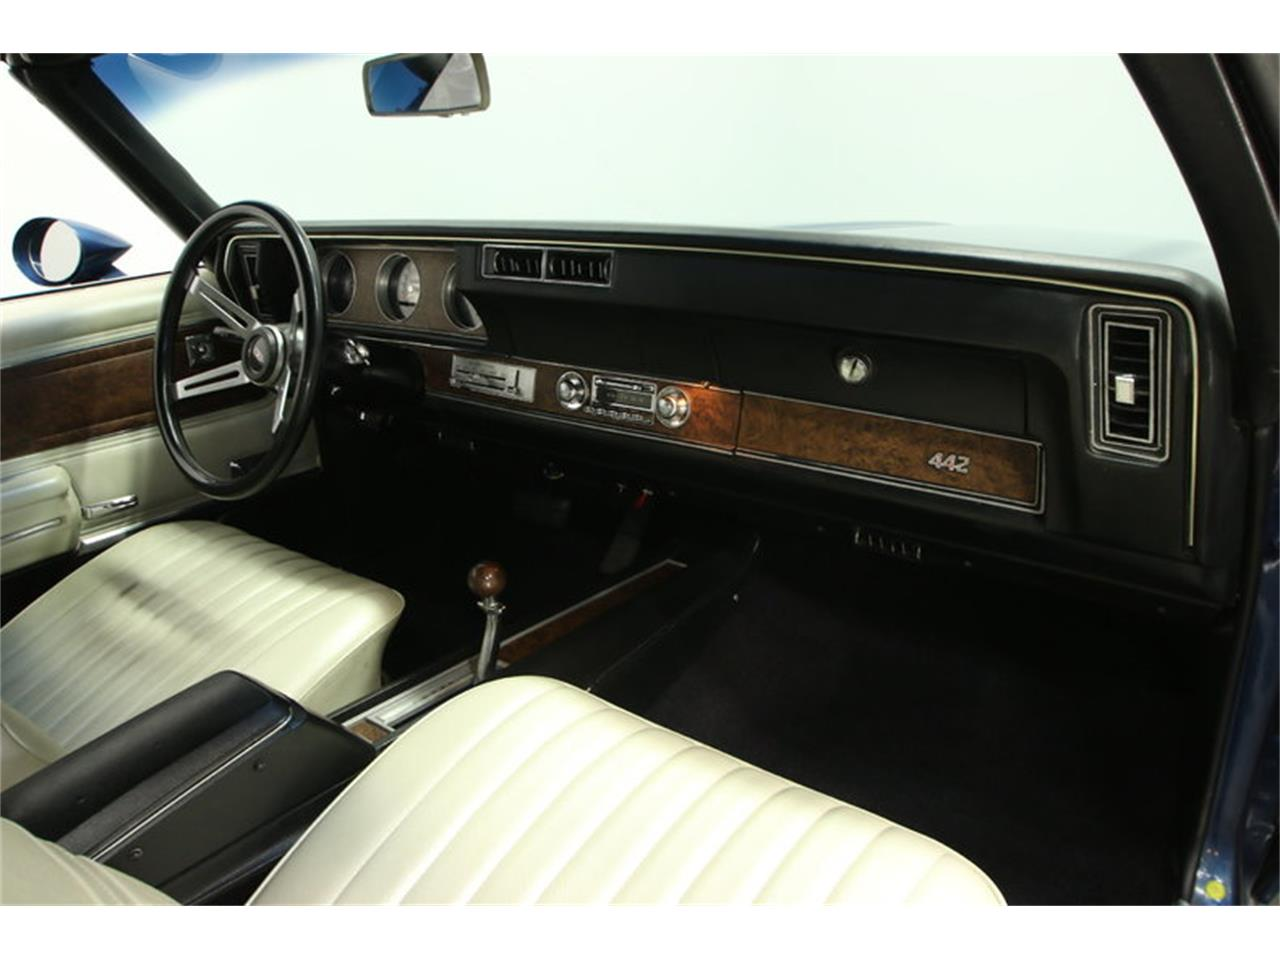 Large Picture of Classic 1970 Oldsmobile Cutlass located in Florida - $39,995.00 Offered by Streetside Classics - Tampa - KIZH